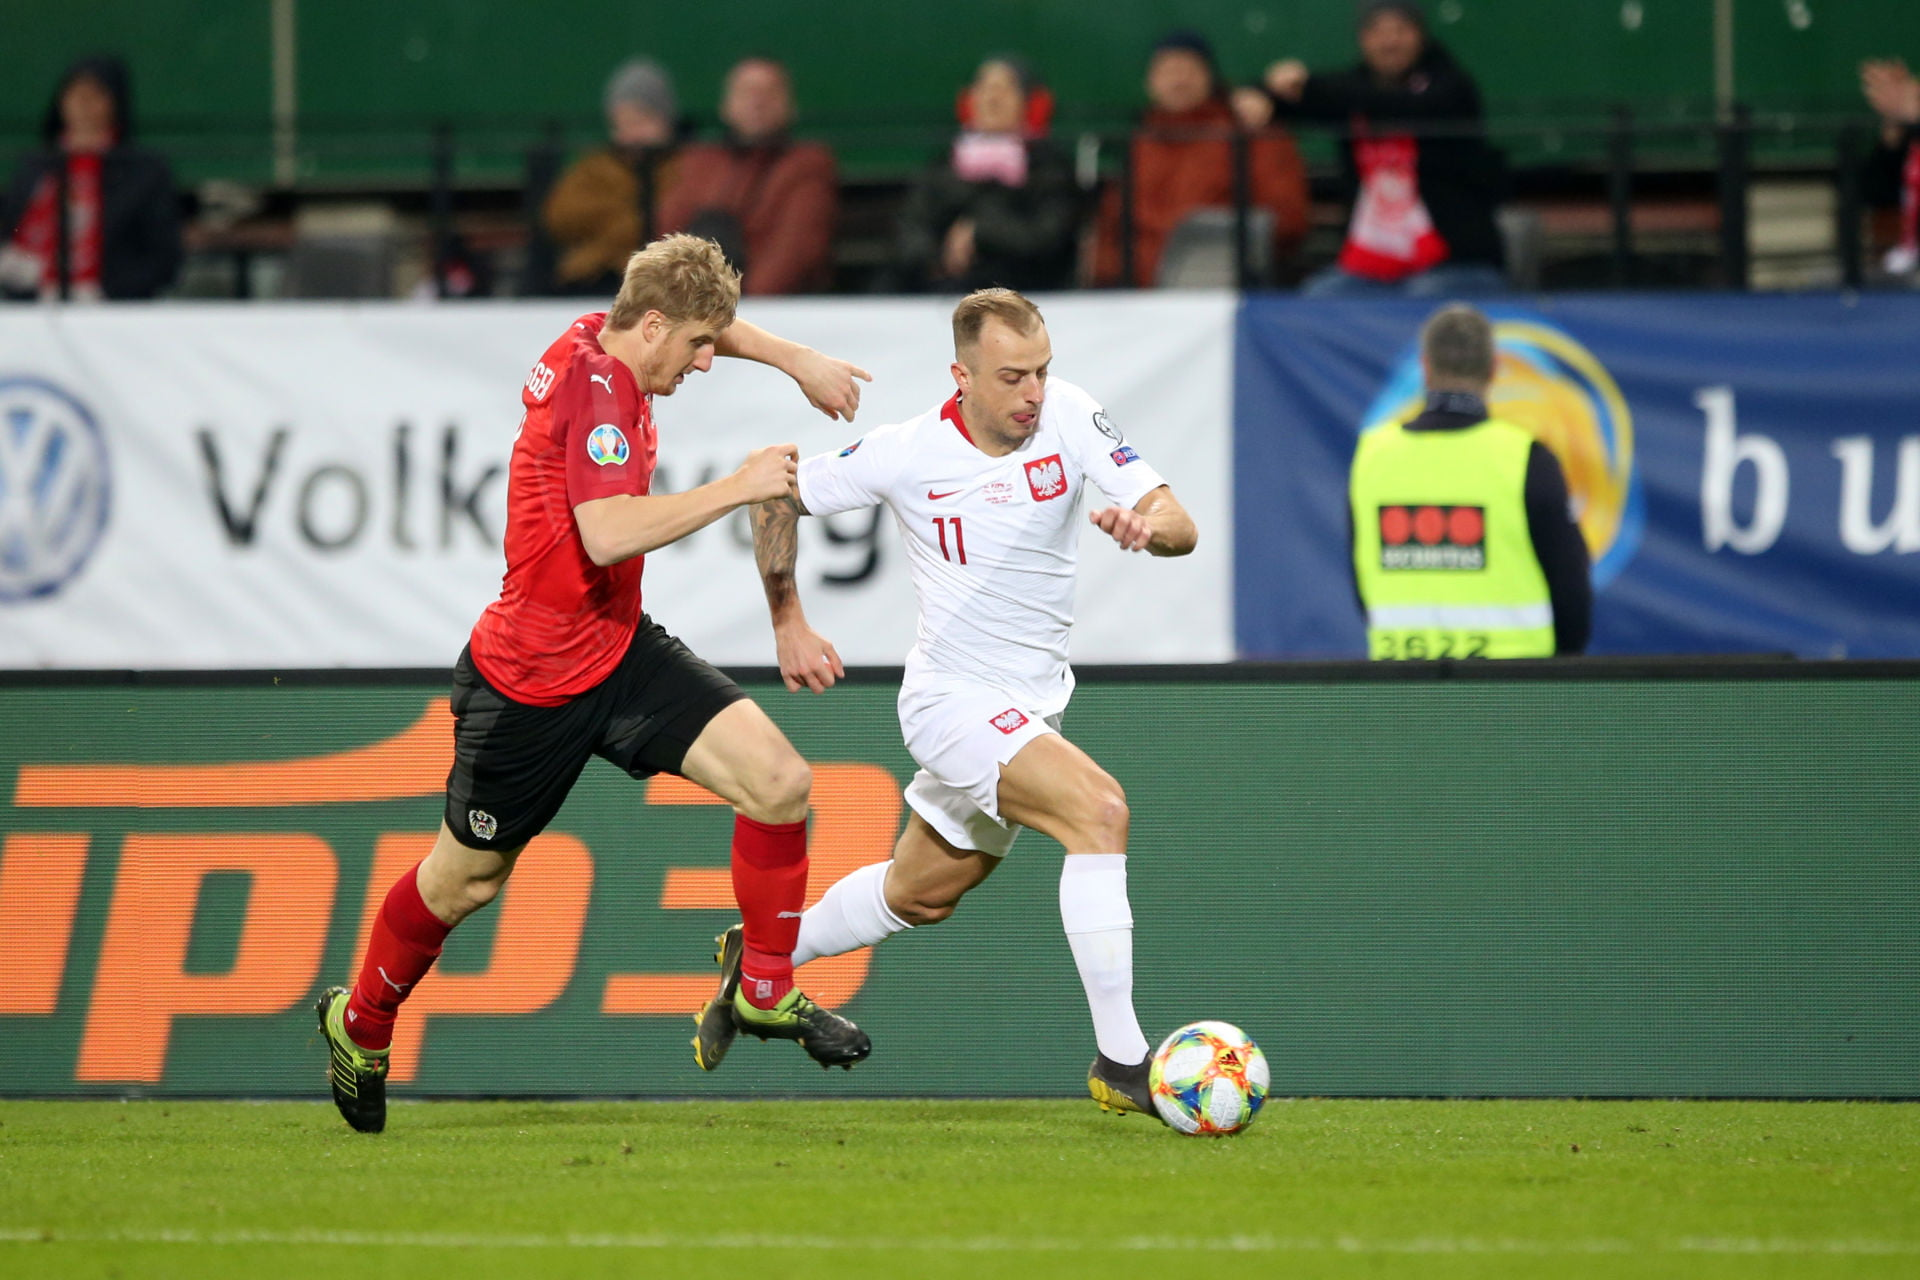 WIEDEN 21.03.2019 MECZ ELIMINACJE DO MISTRZOSTW EUROPY 2020 GRUPA G: AUSTRIA - POLSKA --- QUALIFICATION FOR UEFA EURO 2020 MATCH GROUP G IN VIENNA: AUSTRIA - POLAND MARTIN HINTEREGGER KAMIL GROSICKI FOT. PIOTR KUCZA/ 400mm.pl